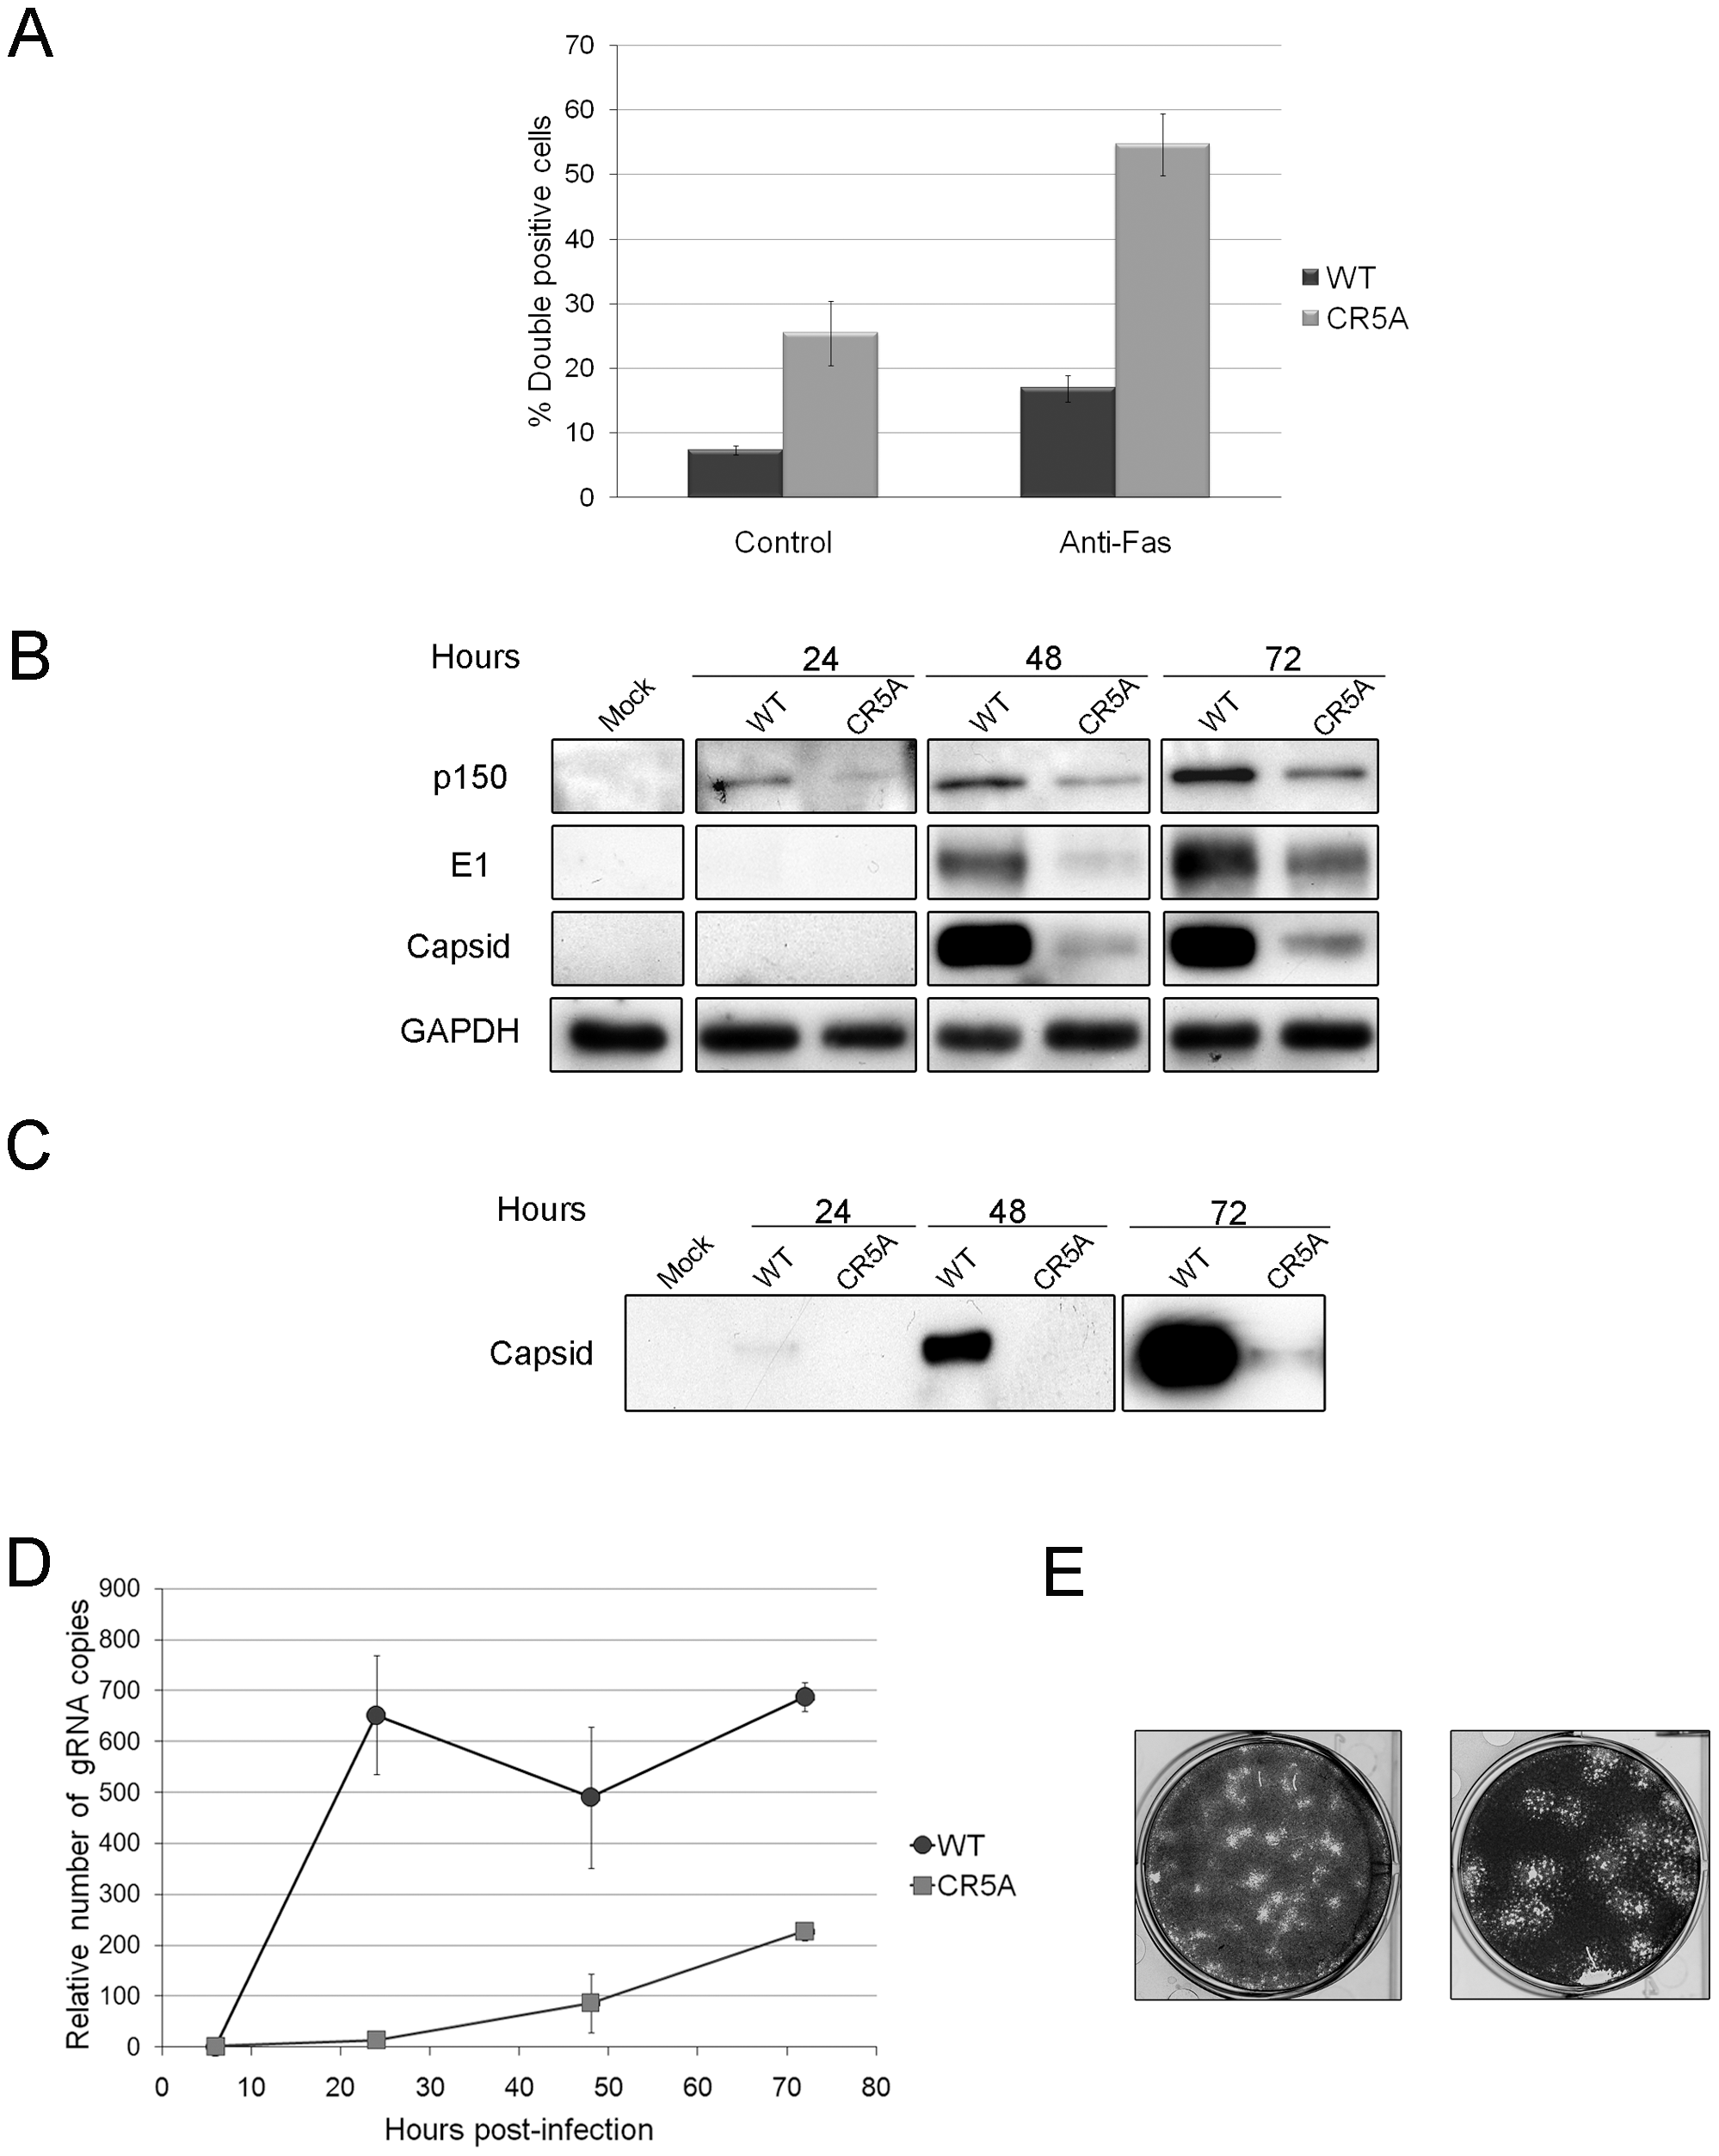 The carboxyl-terminal R motif in capsid protein is required to block apoptosis during RV infection.